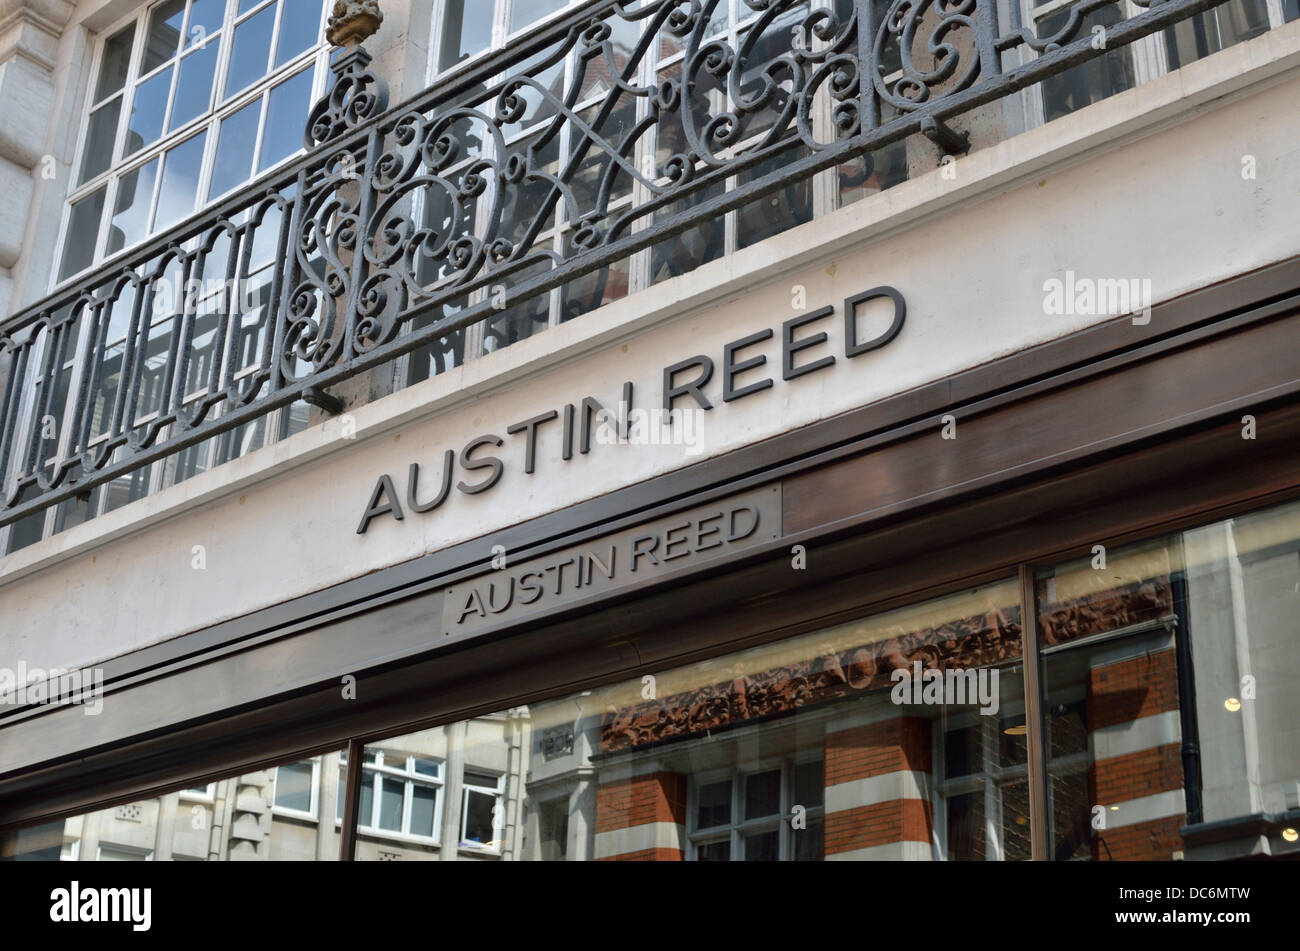 Austin Reed Men S Fashion Store In Regent Street London Uk Stock Photo Alamy